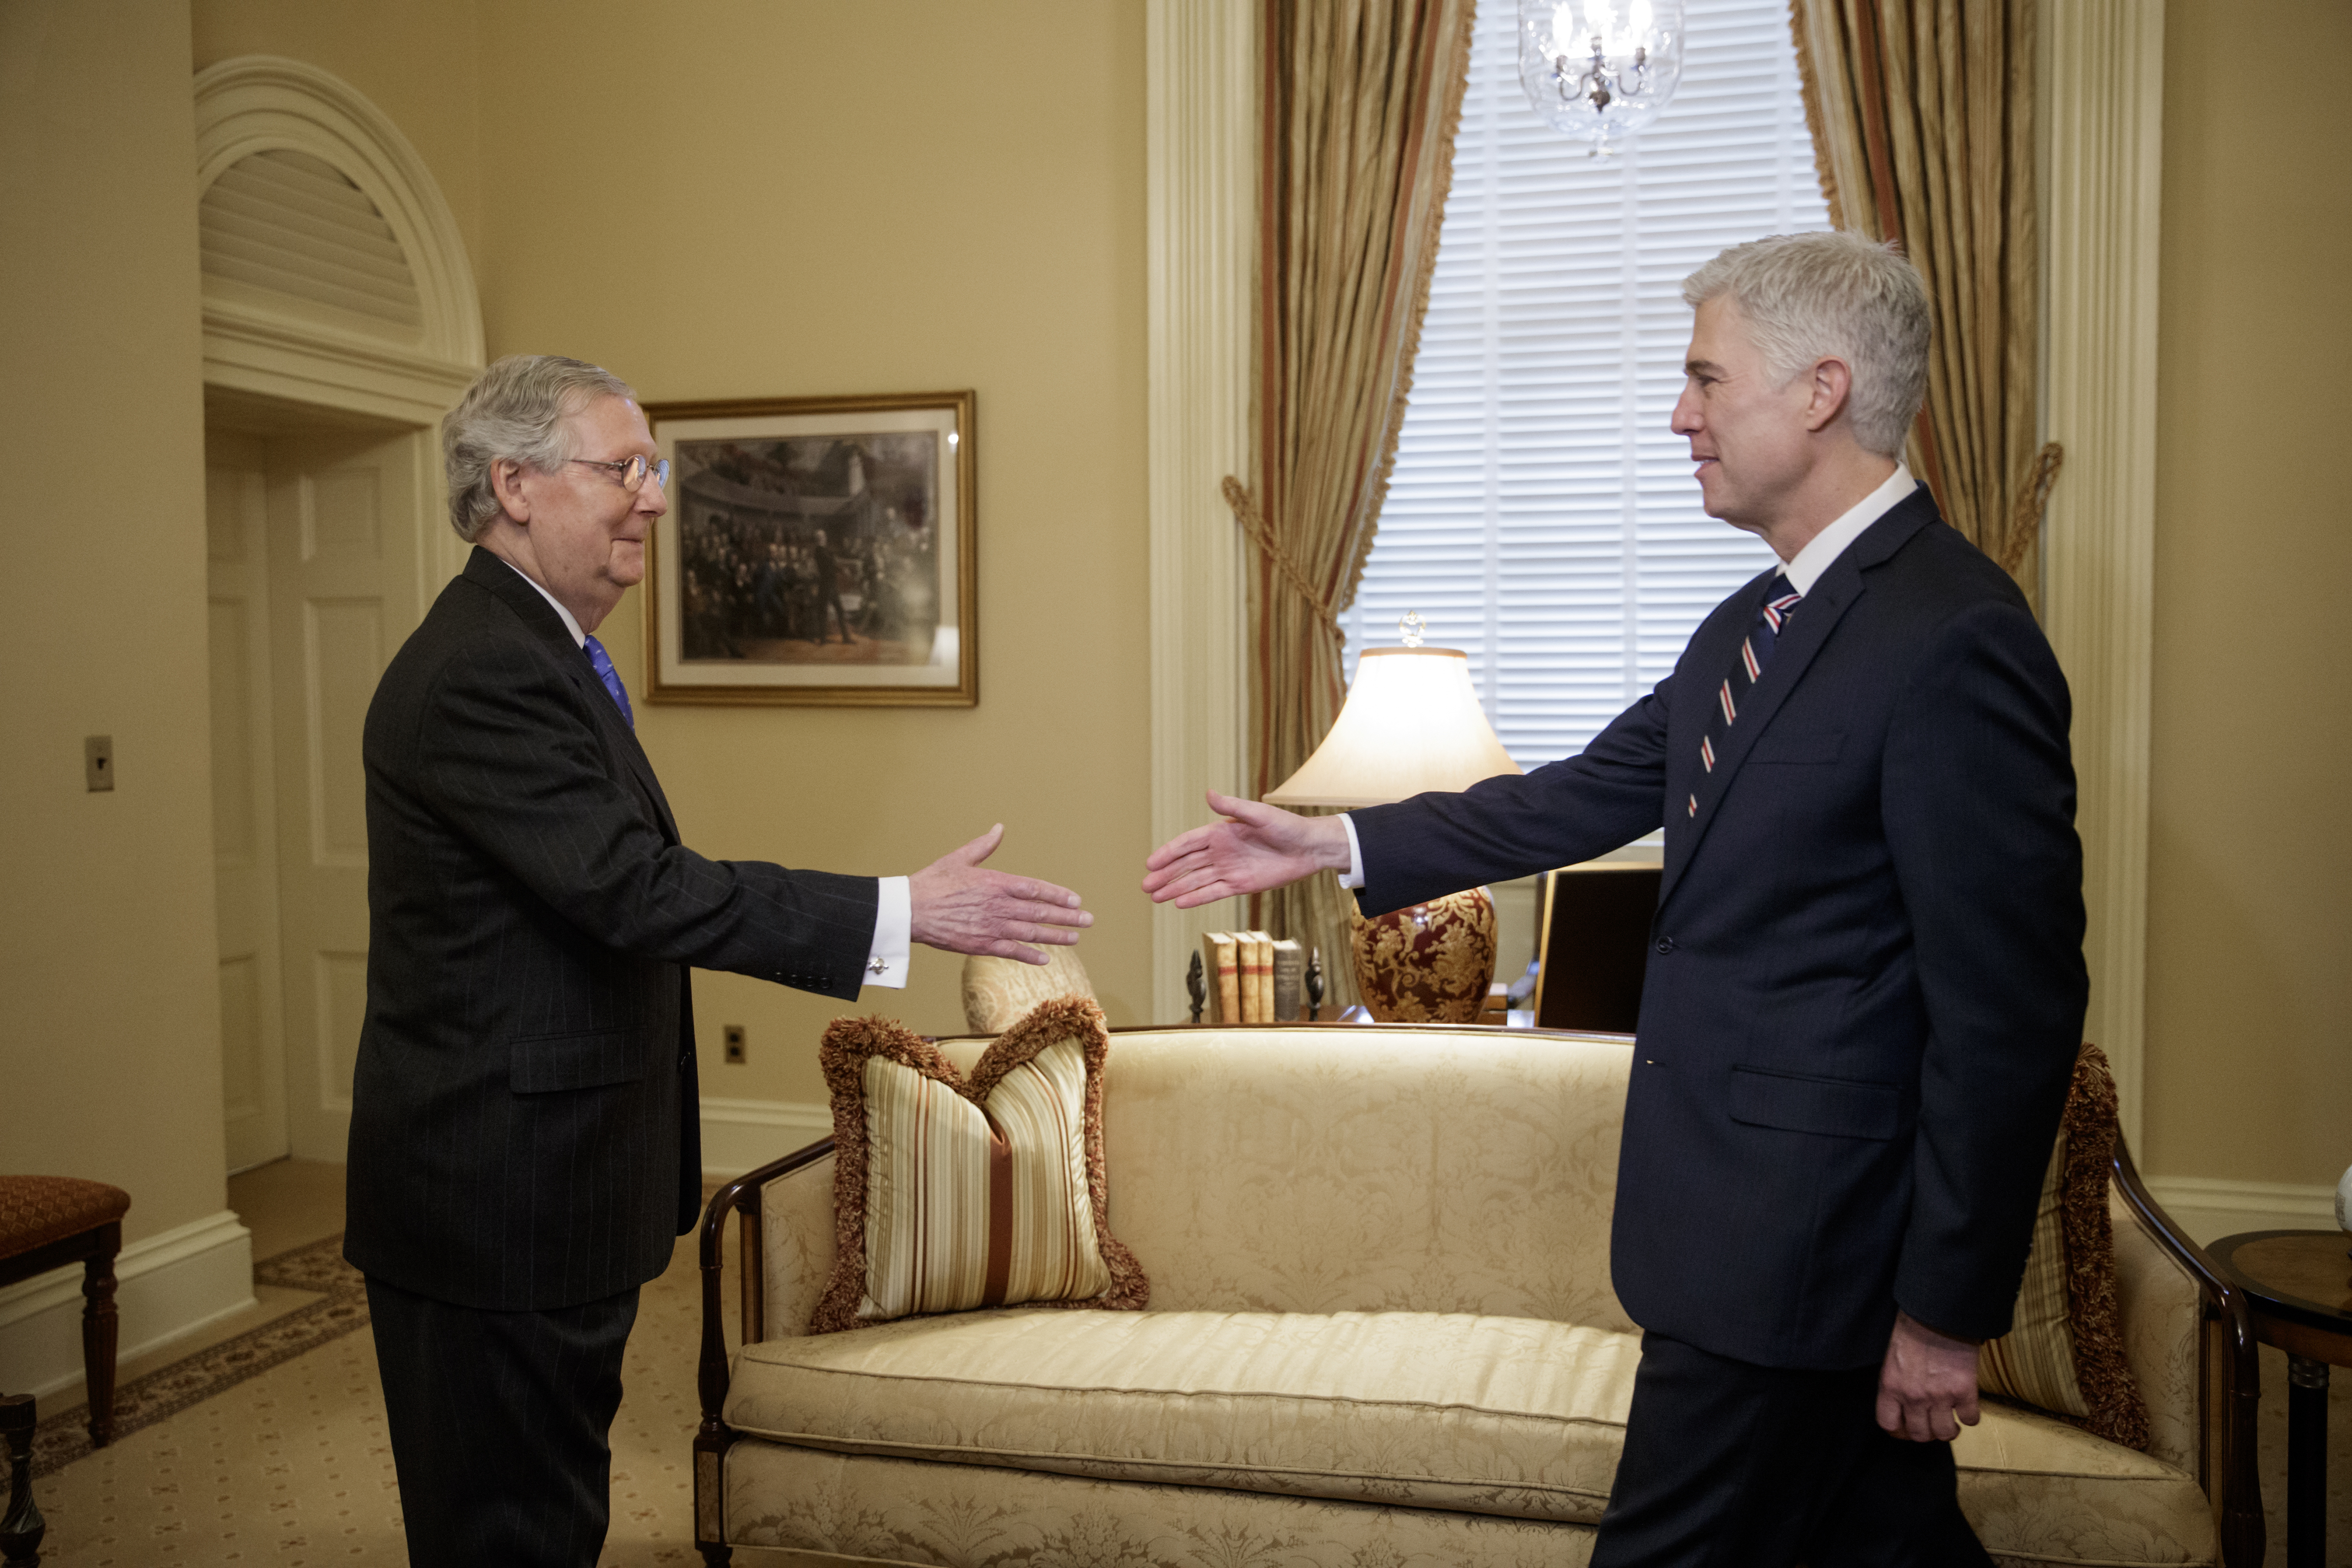 Supreme Court Justice nominee Neil Gorsuch is greeted by Senate Majority Leader Mitch McConnell of Ky. on Capitol Hill in Washington on Feb. 1, 2017. (AP Photo/J. Scott Applewhite)